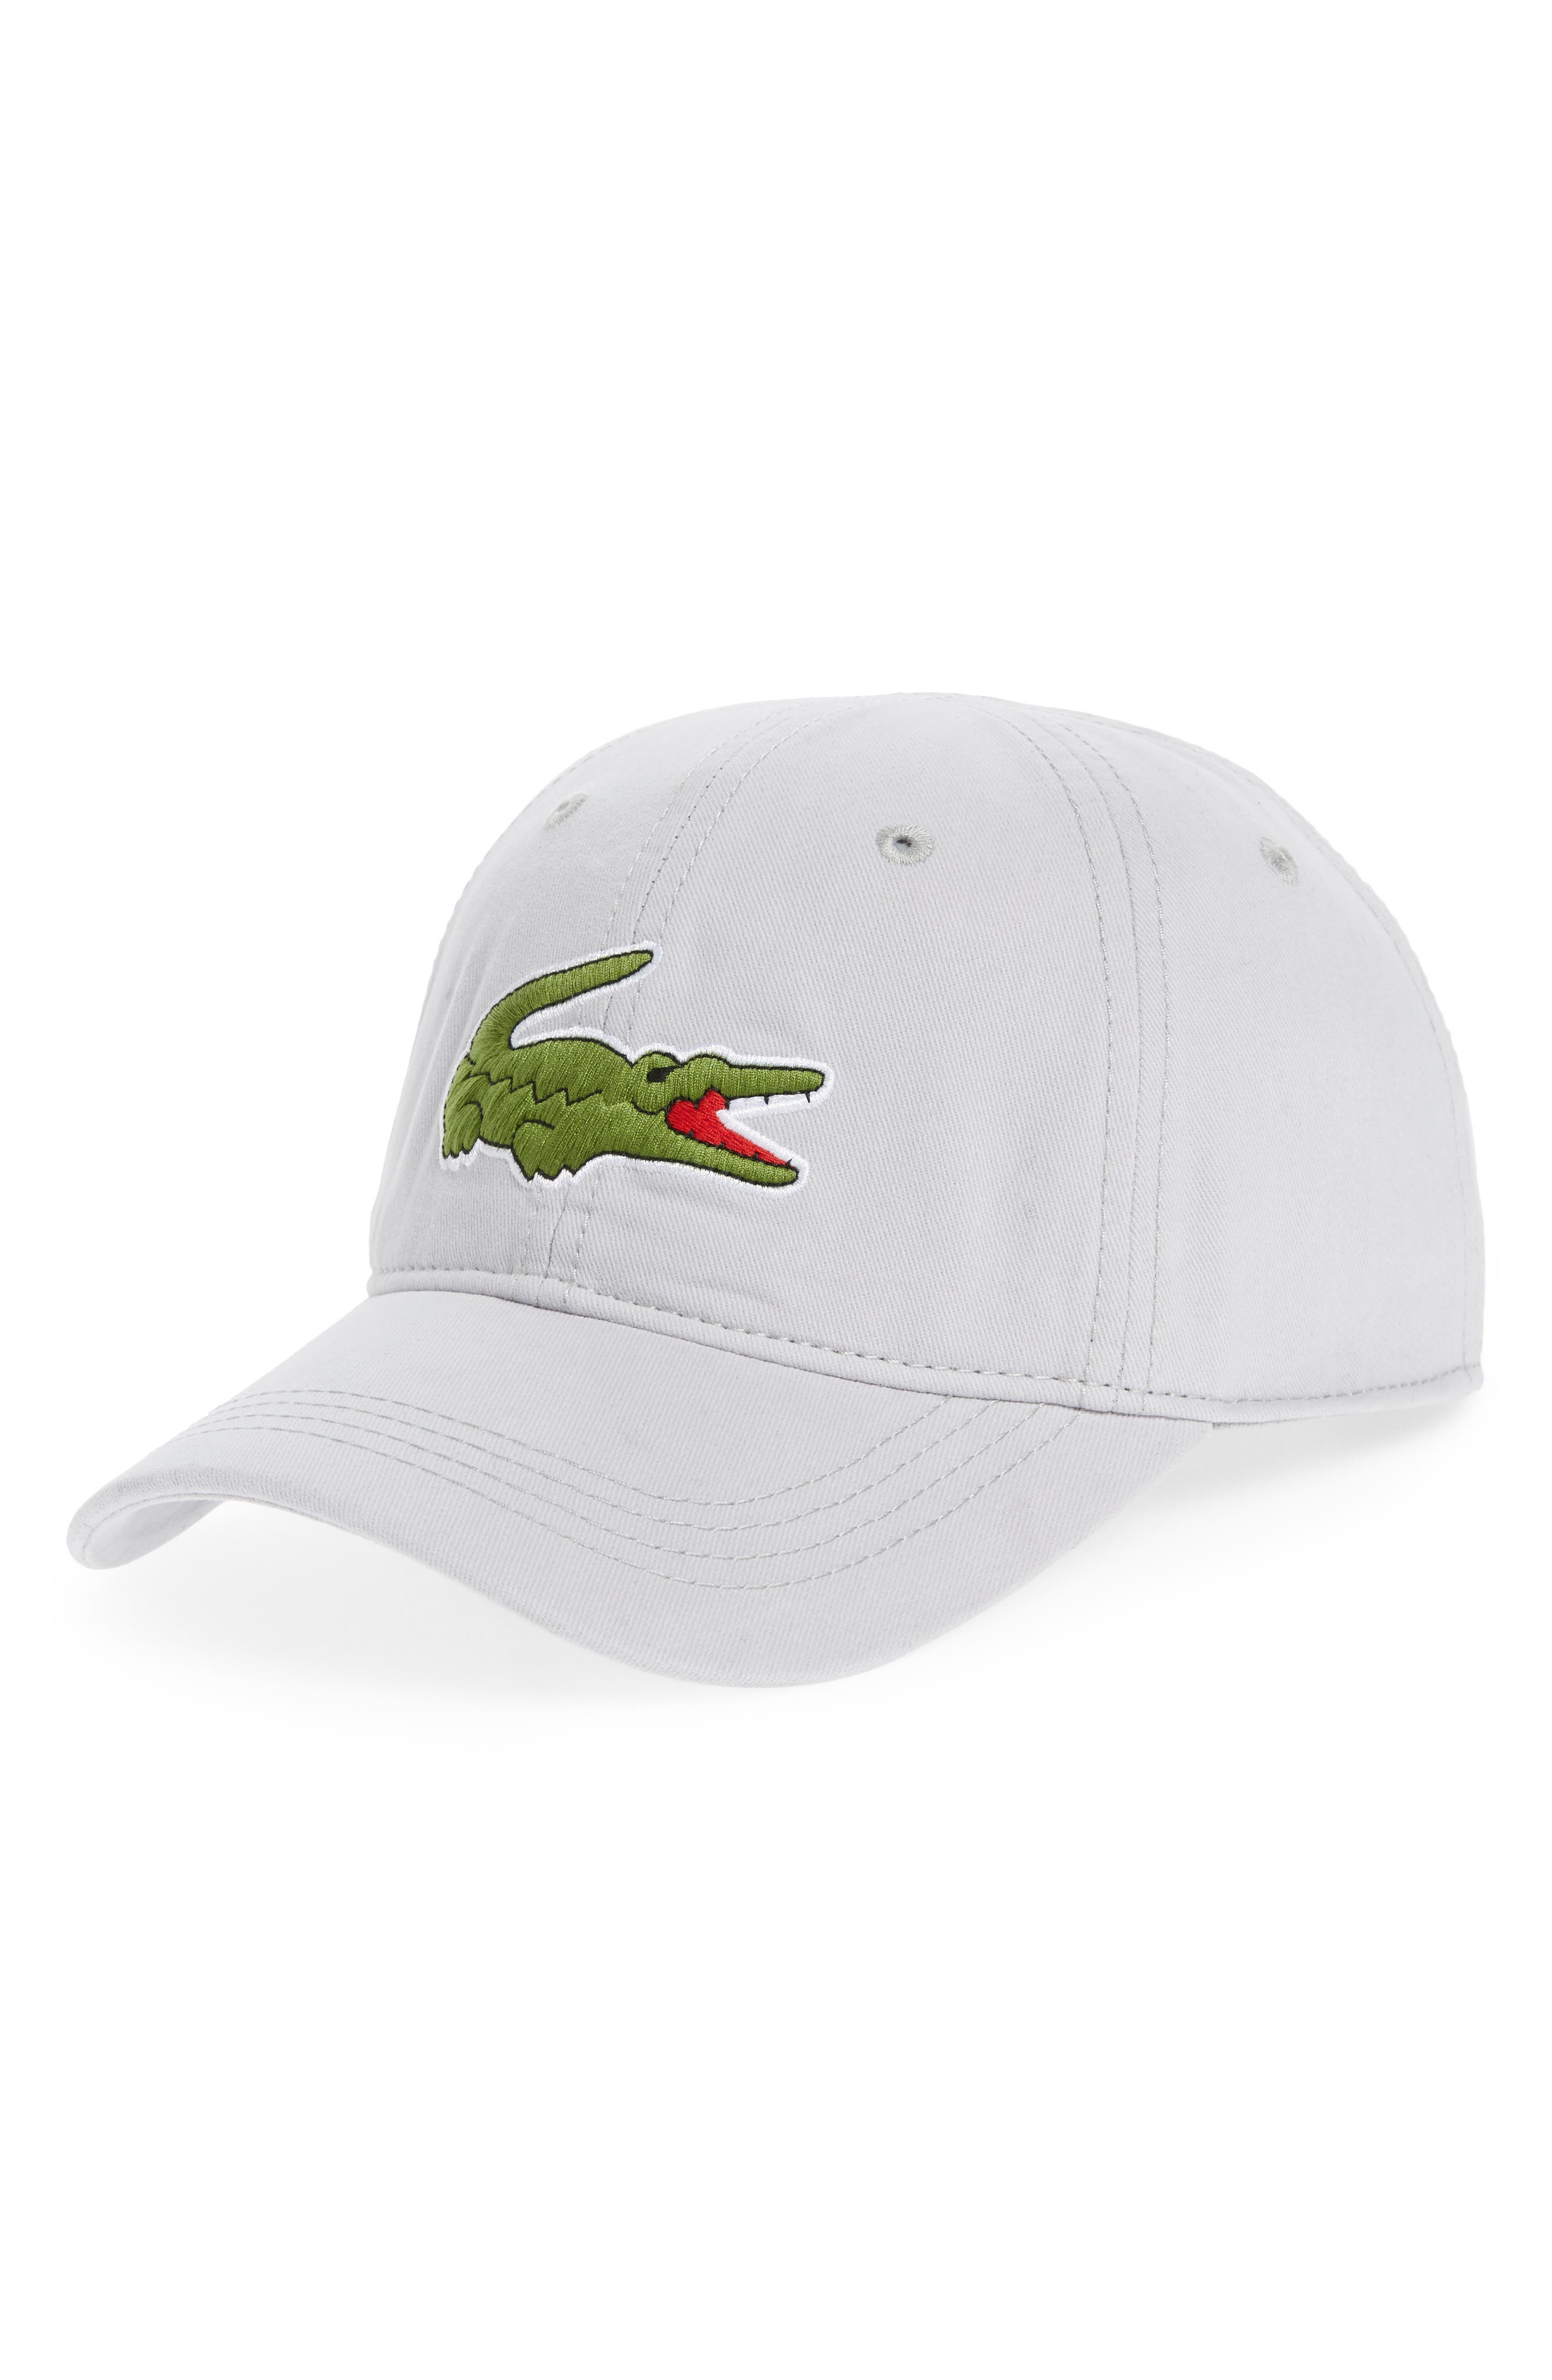 'Big Croc' Logo Embroidered Cap,                         Main,                         color, 020